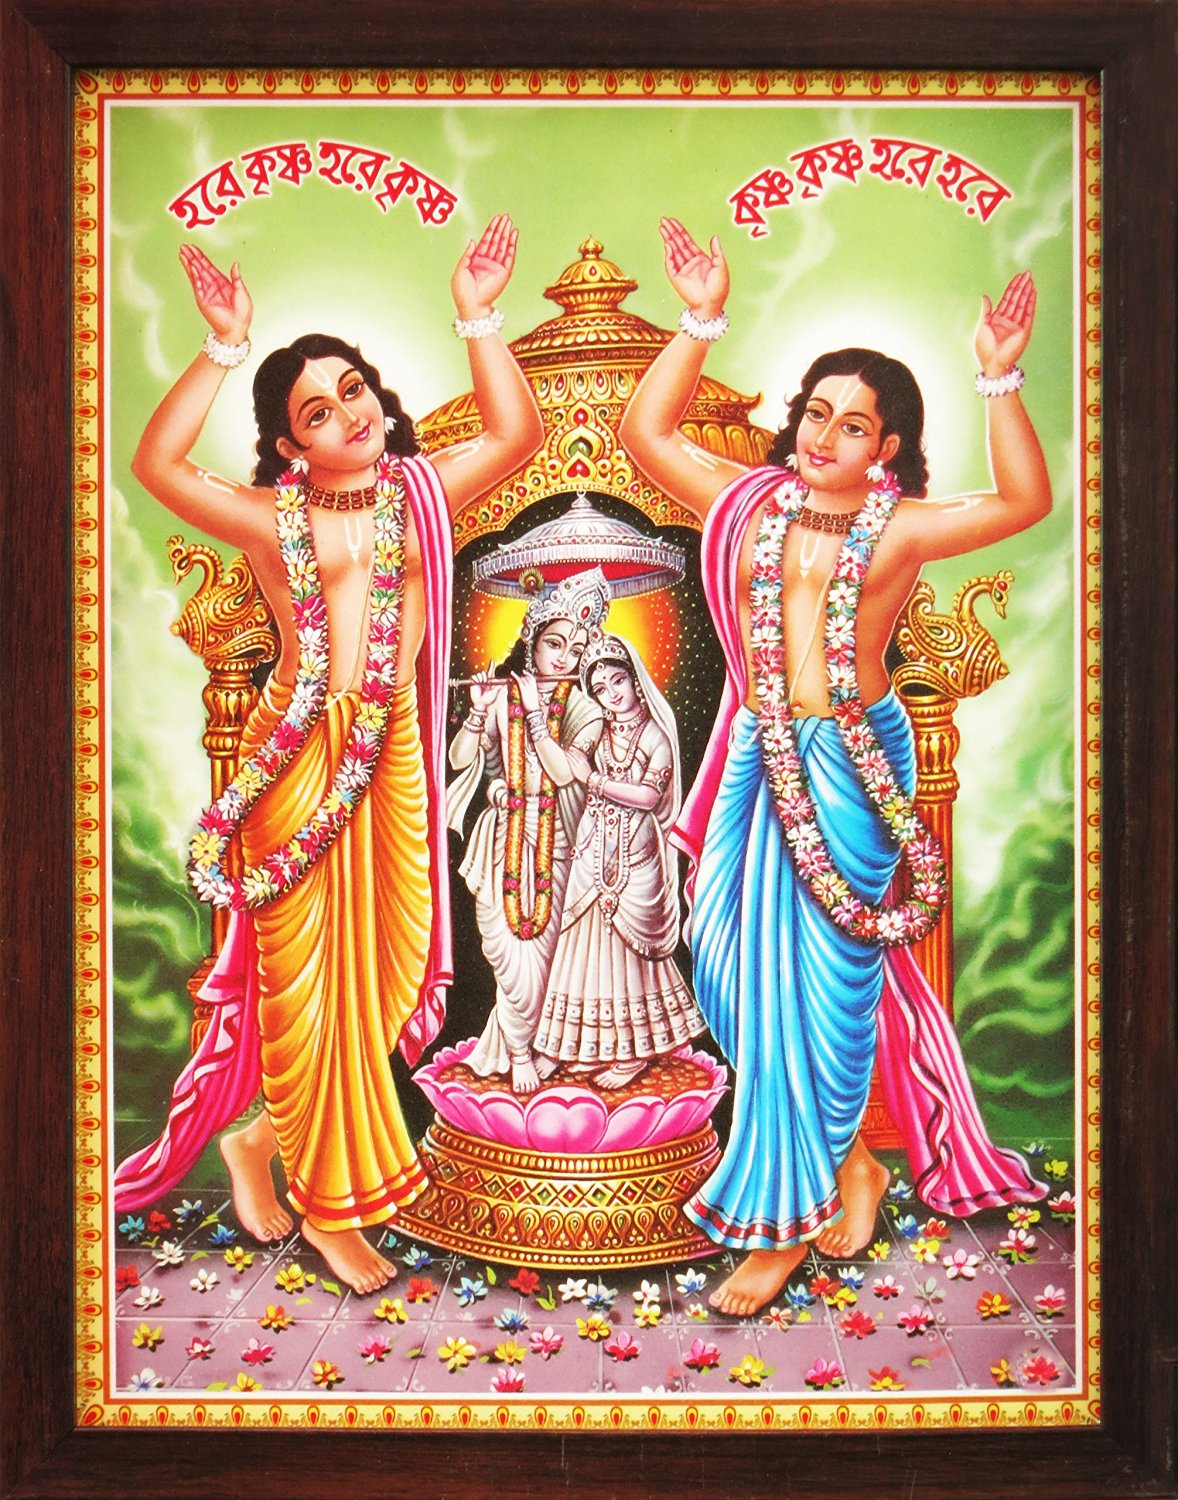 Lord Dancing Around the Statue of Lord Radha & Krishna, a Religious & Elegant Poster with Frame with Frame, Must for Office / Home / Religious